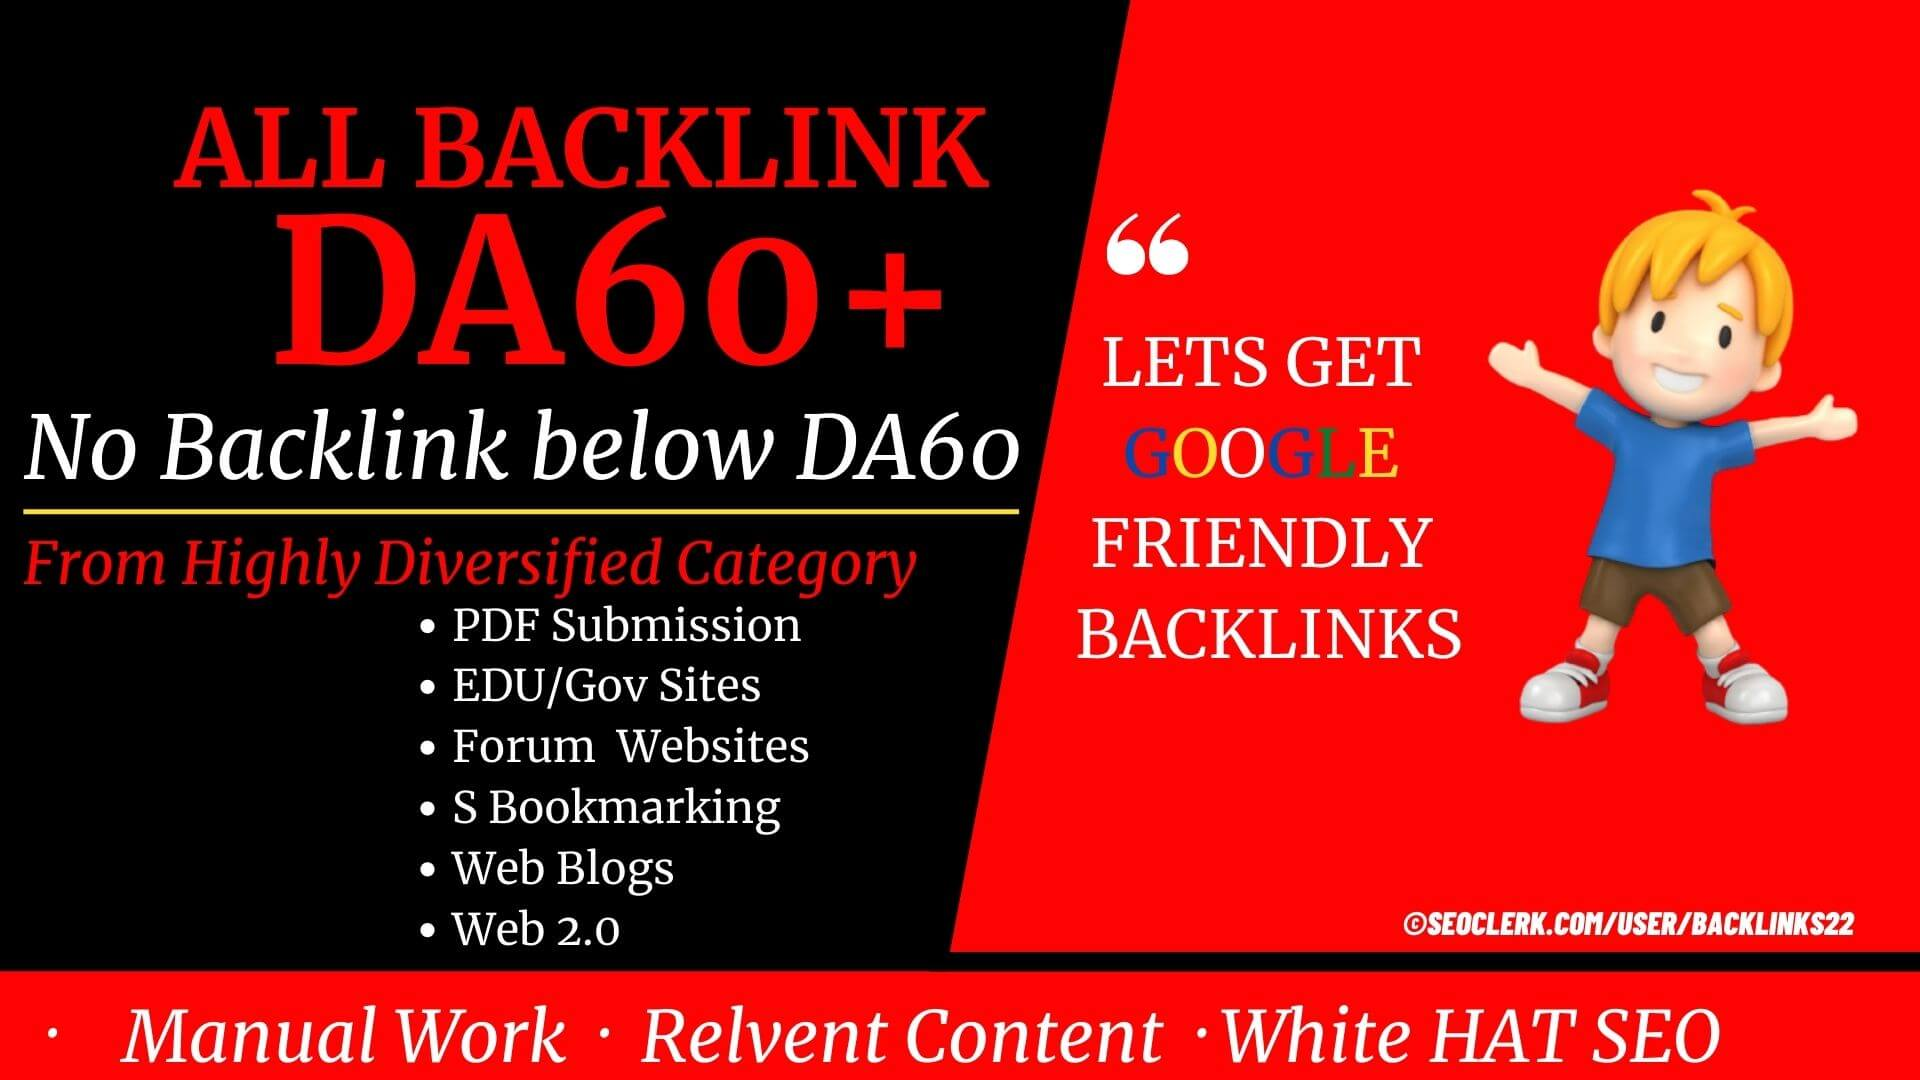 Only DA60+ Backlinks - 53+ Backlinks from Wiki, PDF, Gov, Edu, Forum and S Bookmar to increase SERP